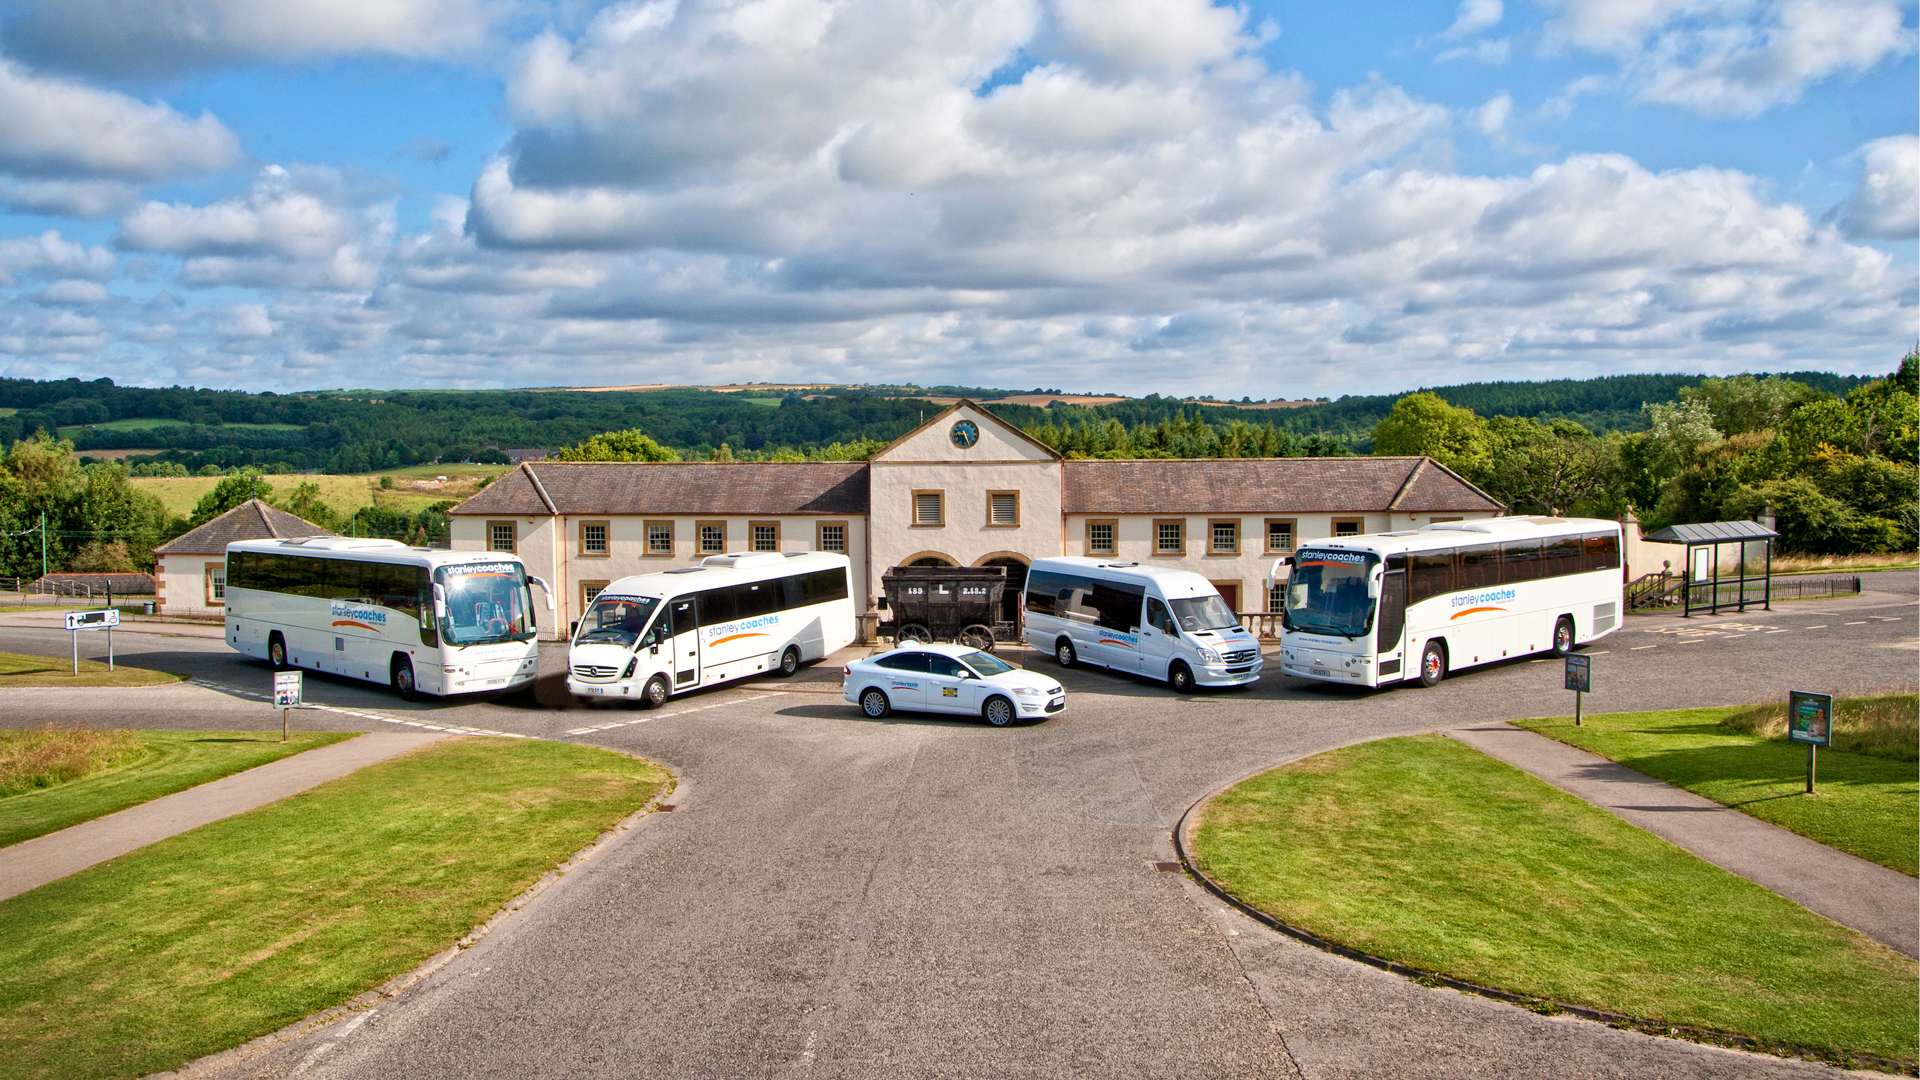 Stanley Travel Taxi Bus Coach Hire Uk Coach Trips Holidays